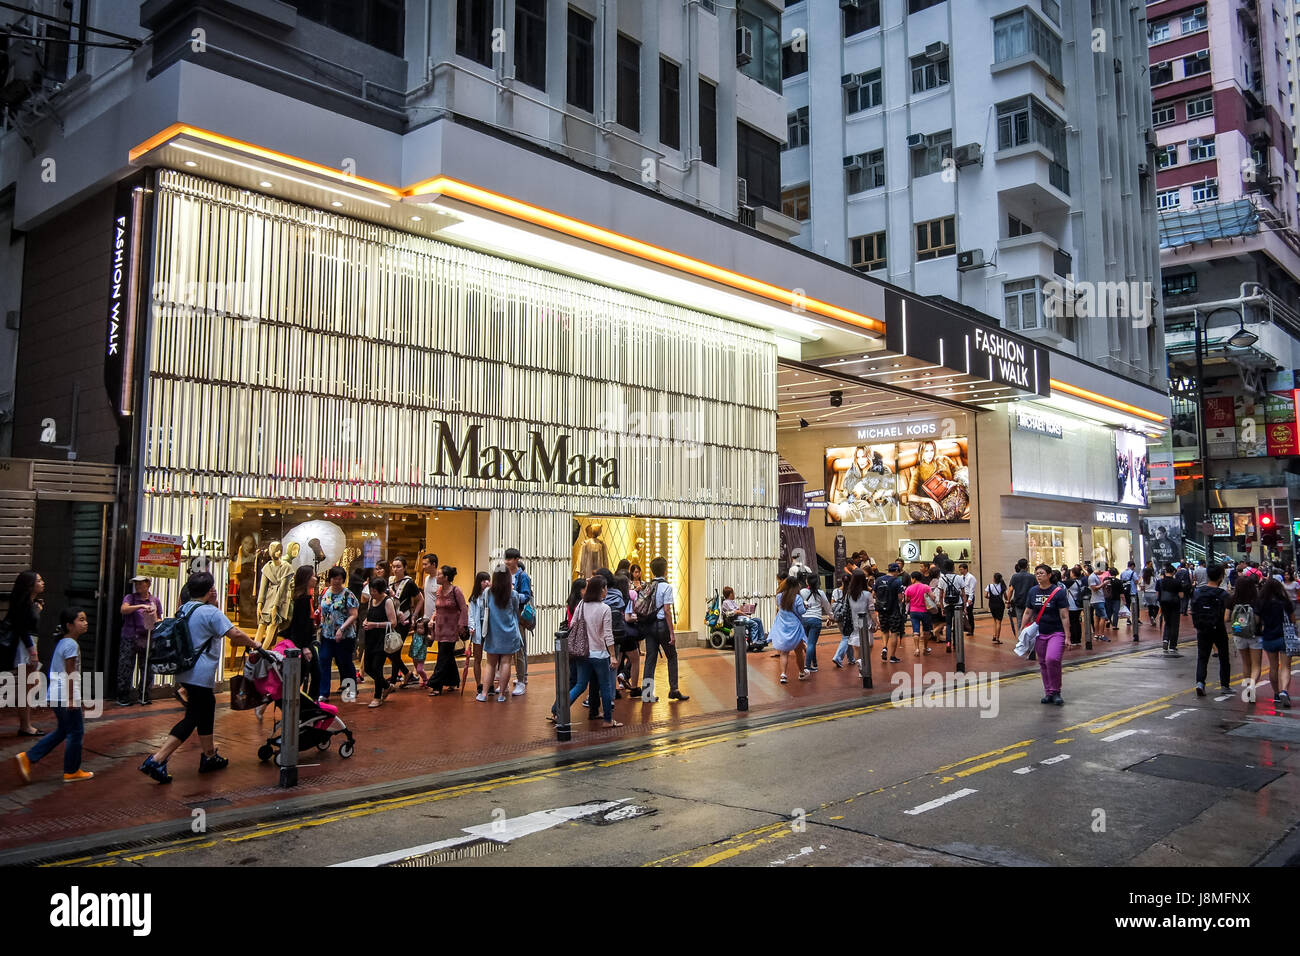 Max Mara's flagship store Fashion Walk Hong Kong - Stock Image